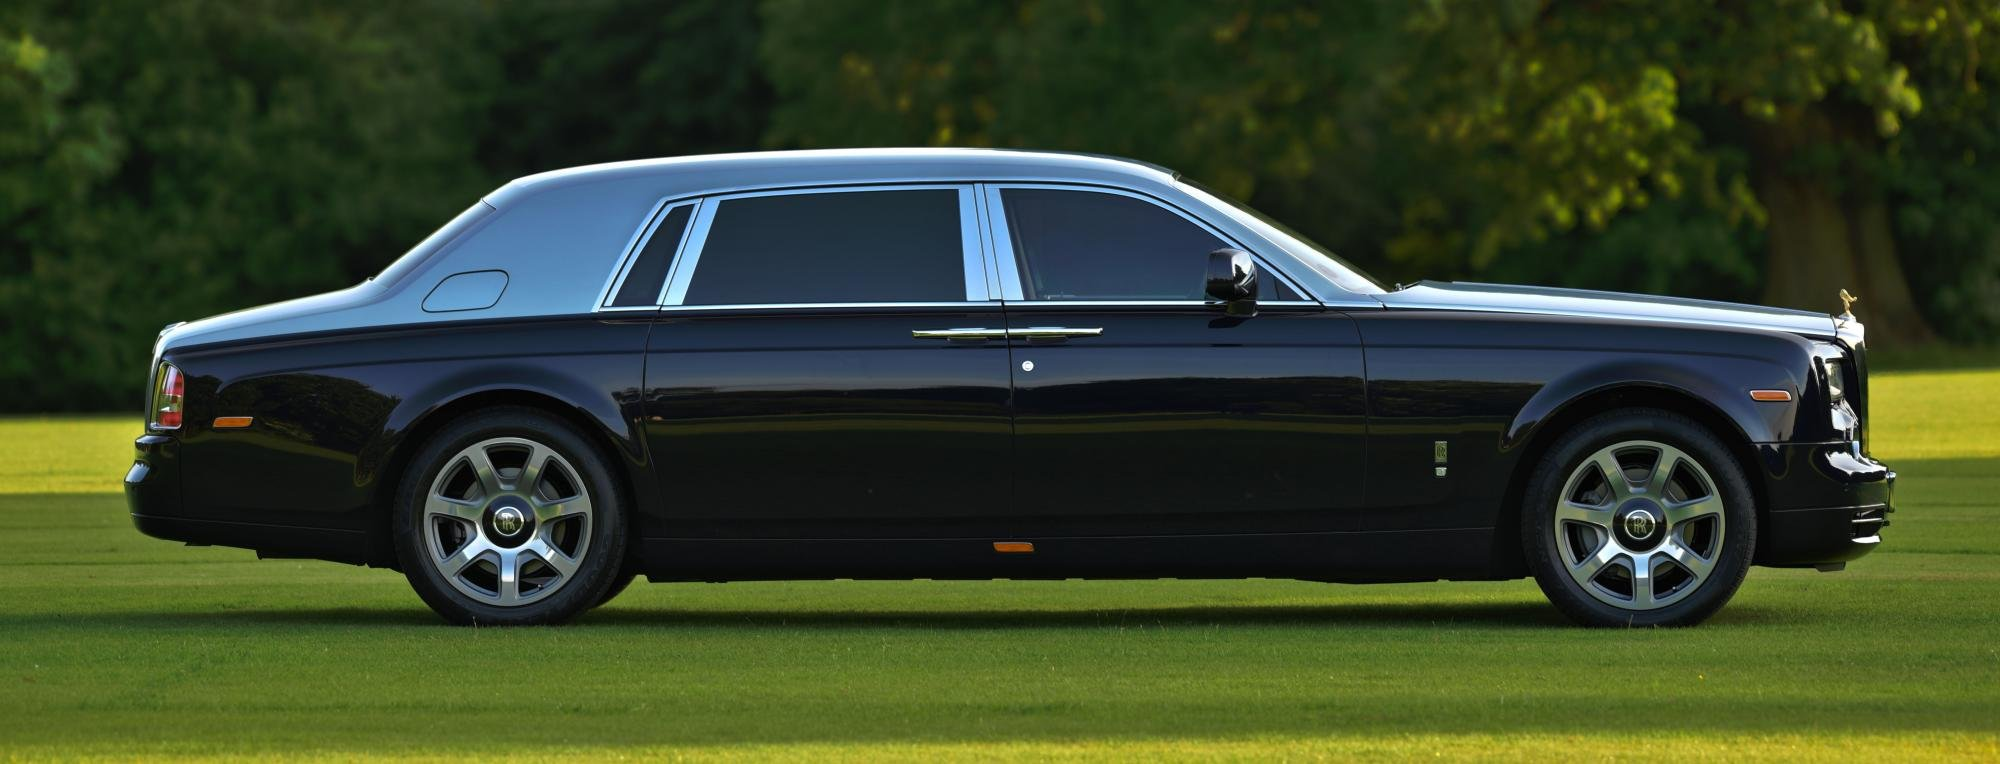 2010 Rolls Royce Phantom EWB VII UK RHD Extended Wheelb For Sale (picture 1 of 6)